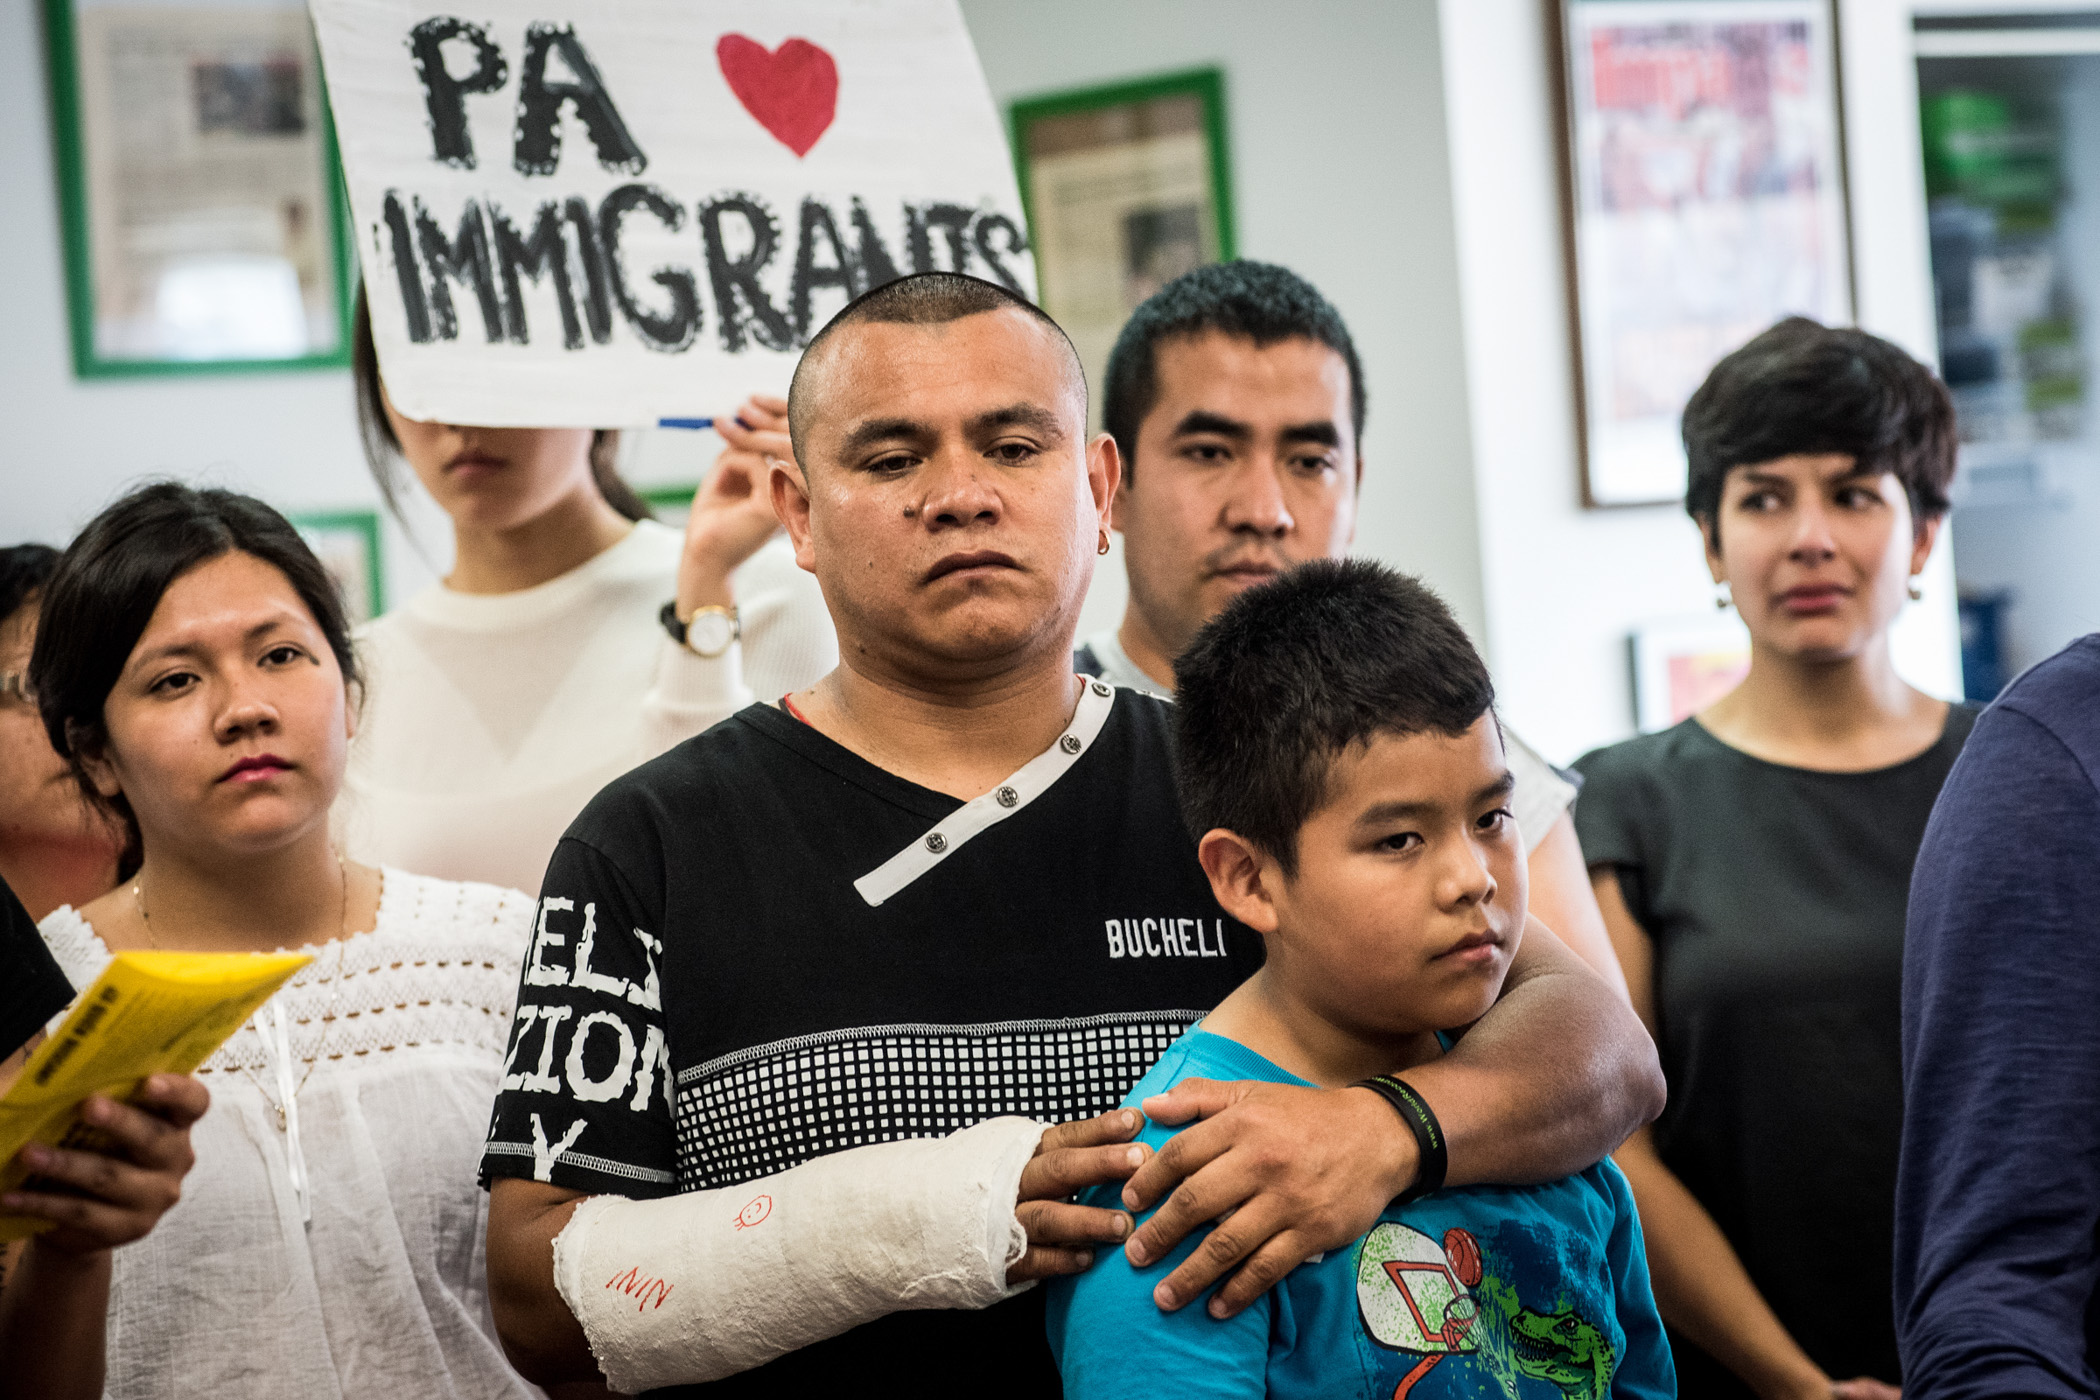 Carlos Rojas holds son Michael, 11, during a news conference in Philadelphia at which activists and immigrants voiced their opinions on the 4-4 Supreme Court ruling on Thursday, June 23, 2016. As an unauthorized immigrant Rojas was affected by the Supreme Court's decision on the Deferred Action for Parents of Americans program which protected him from deportation and allowed him to work legally. (Michael Ares / Philadelphia Inquirer)